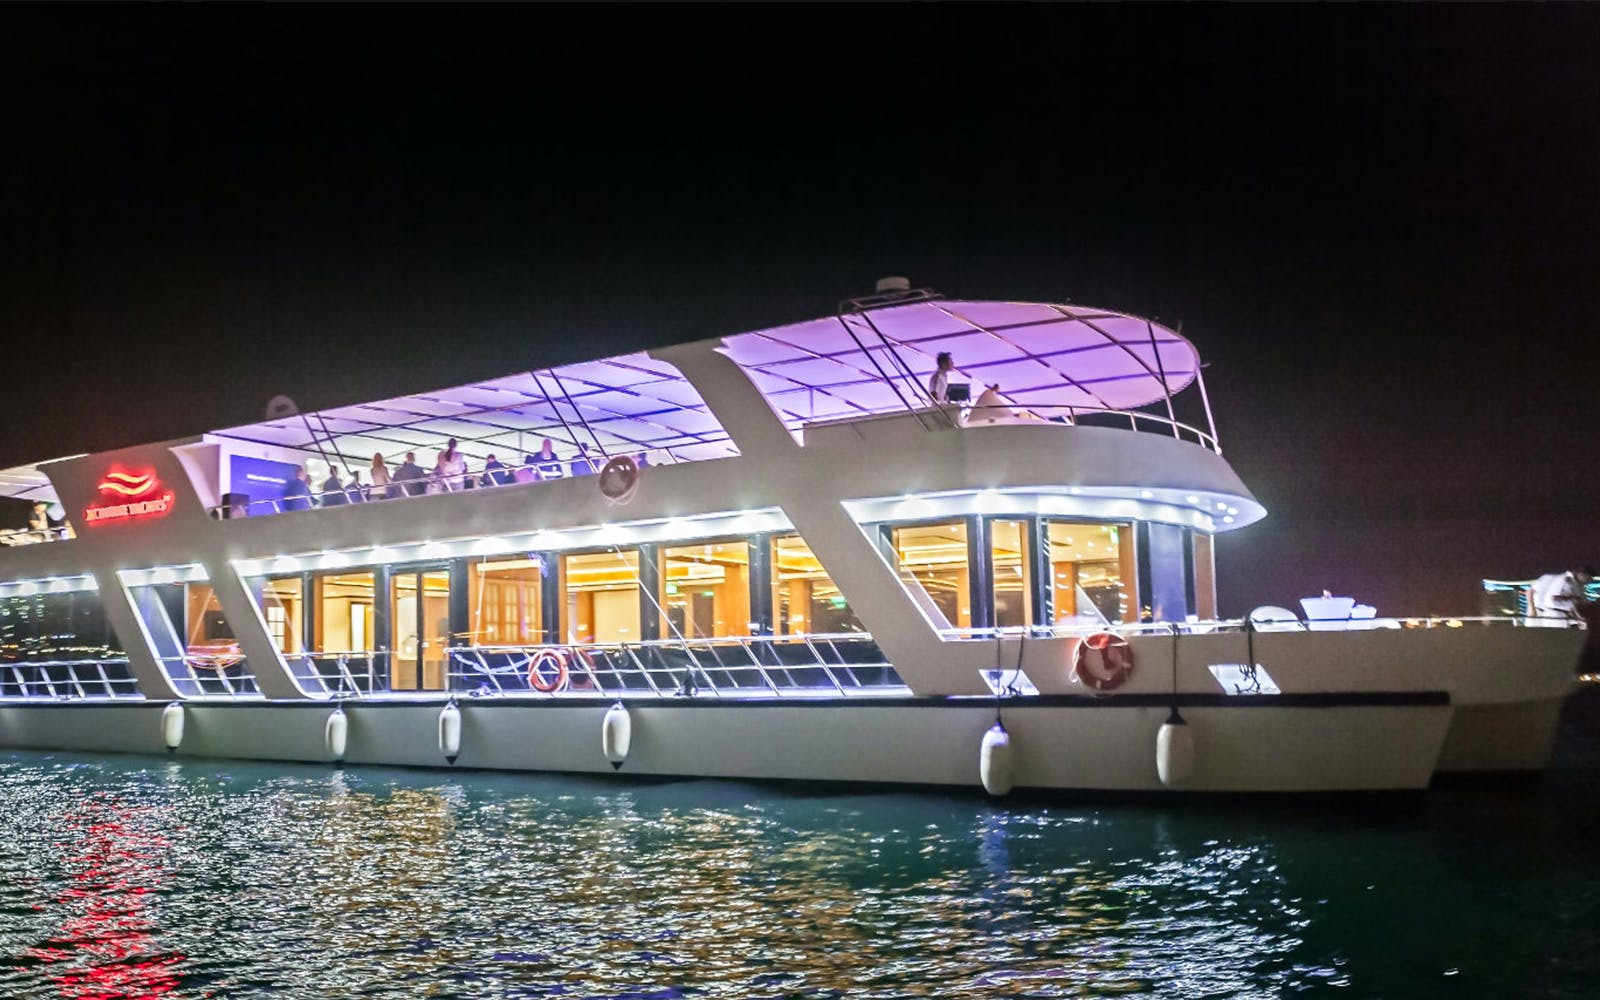 luxury dinner cruise with 5-star hotel buffet spread-1